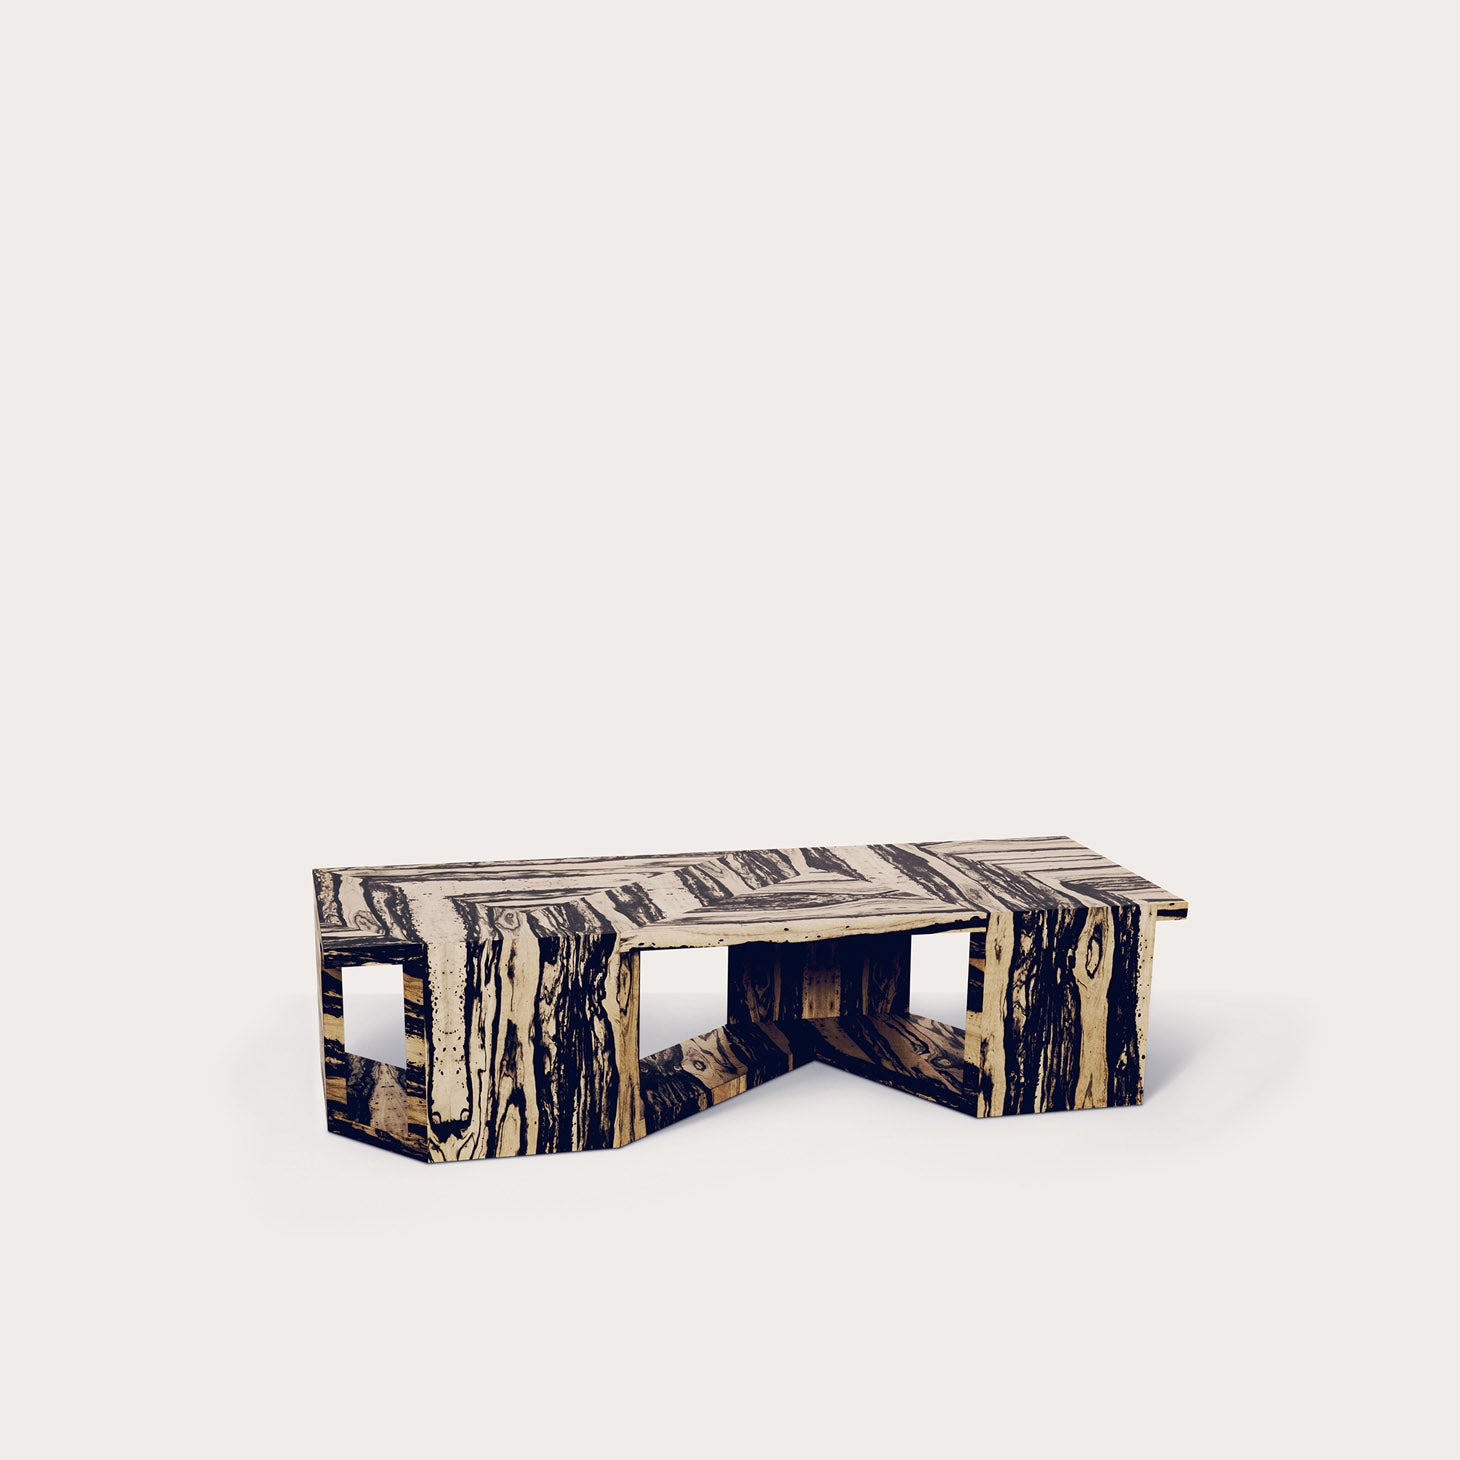 ZER Tables Christophe Delcourt Designer Furniture Sku: 008-230-10308